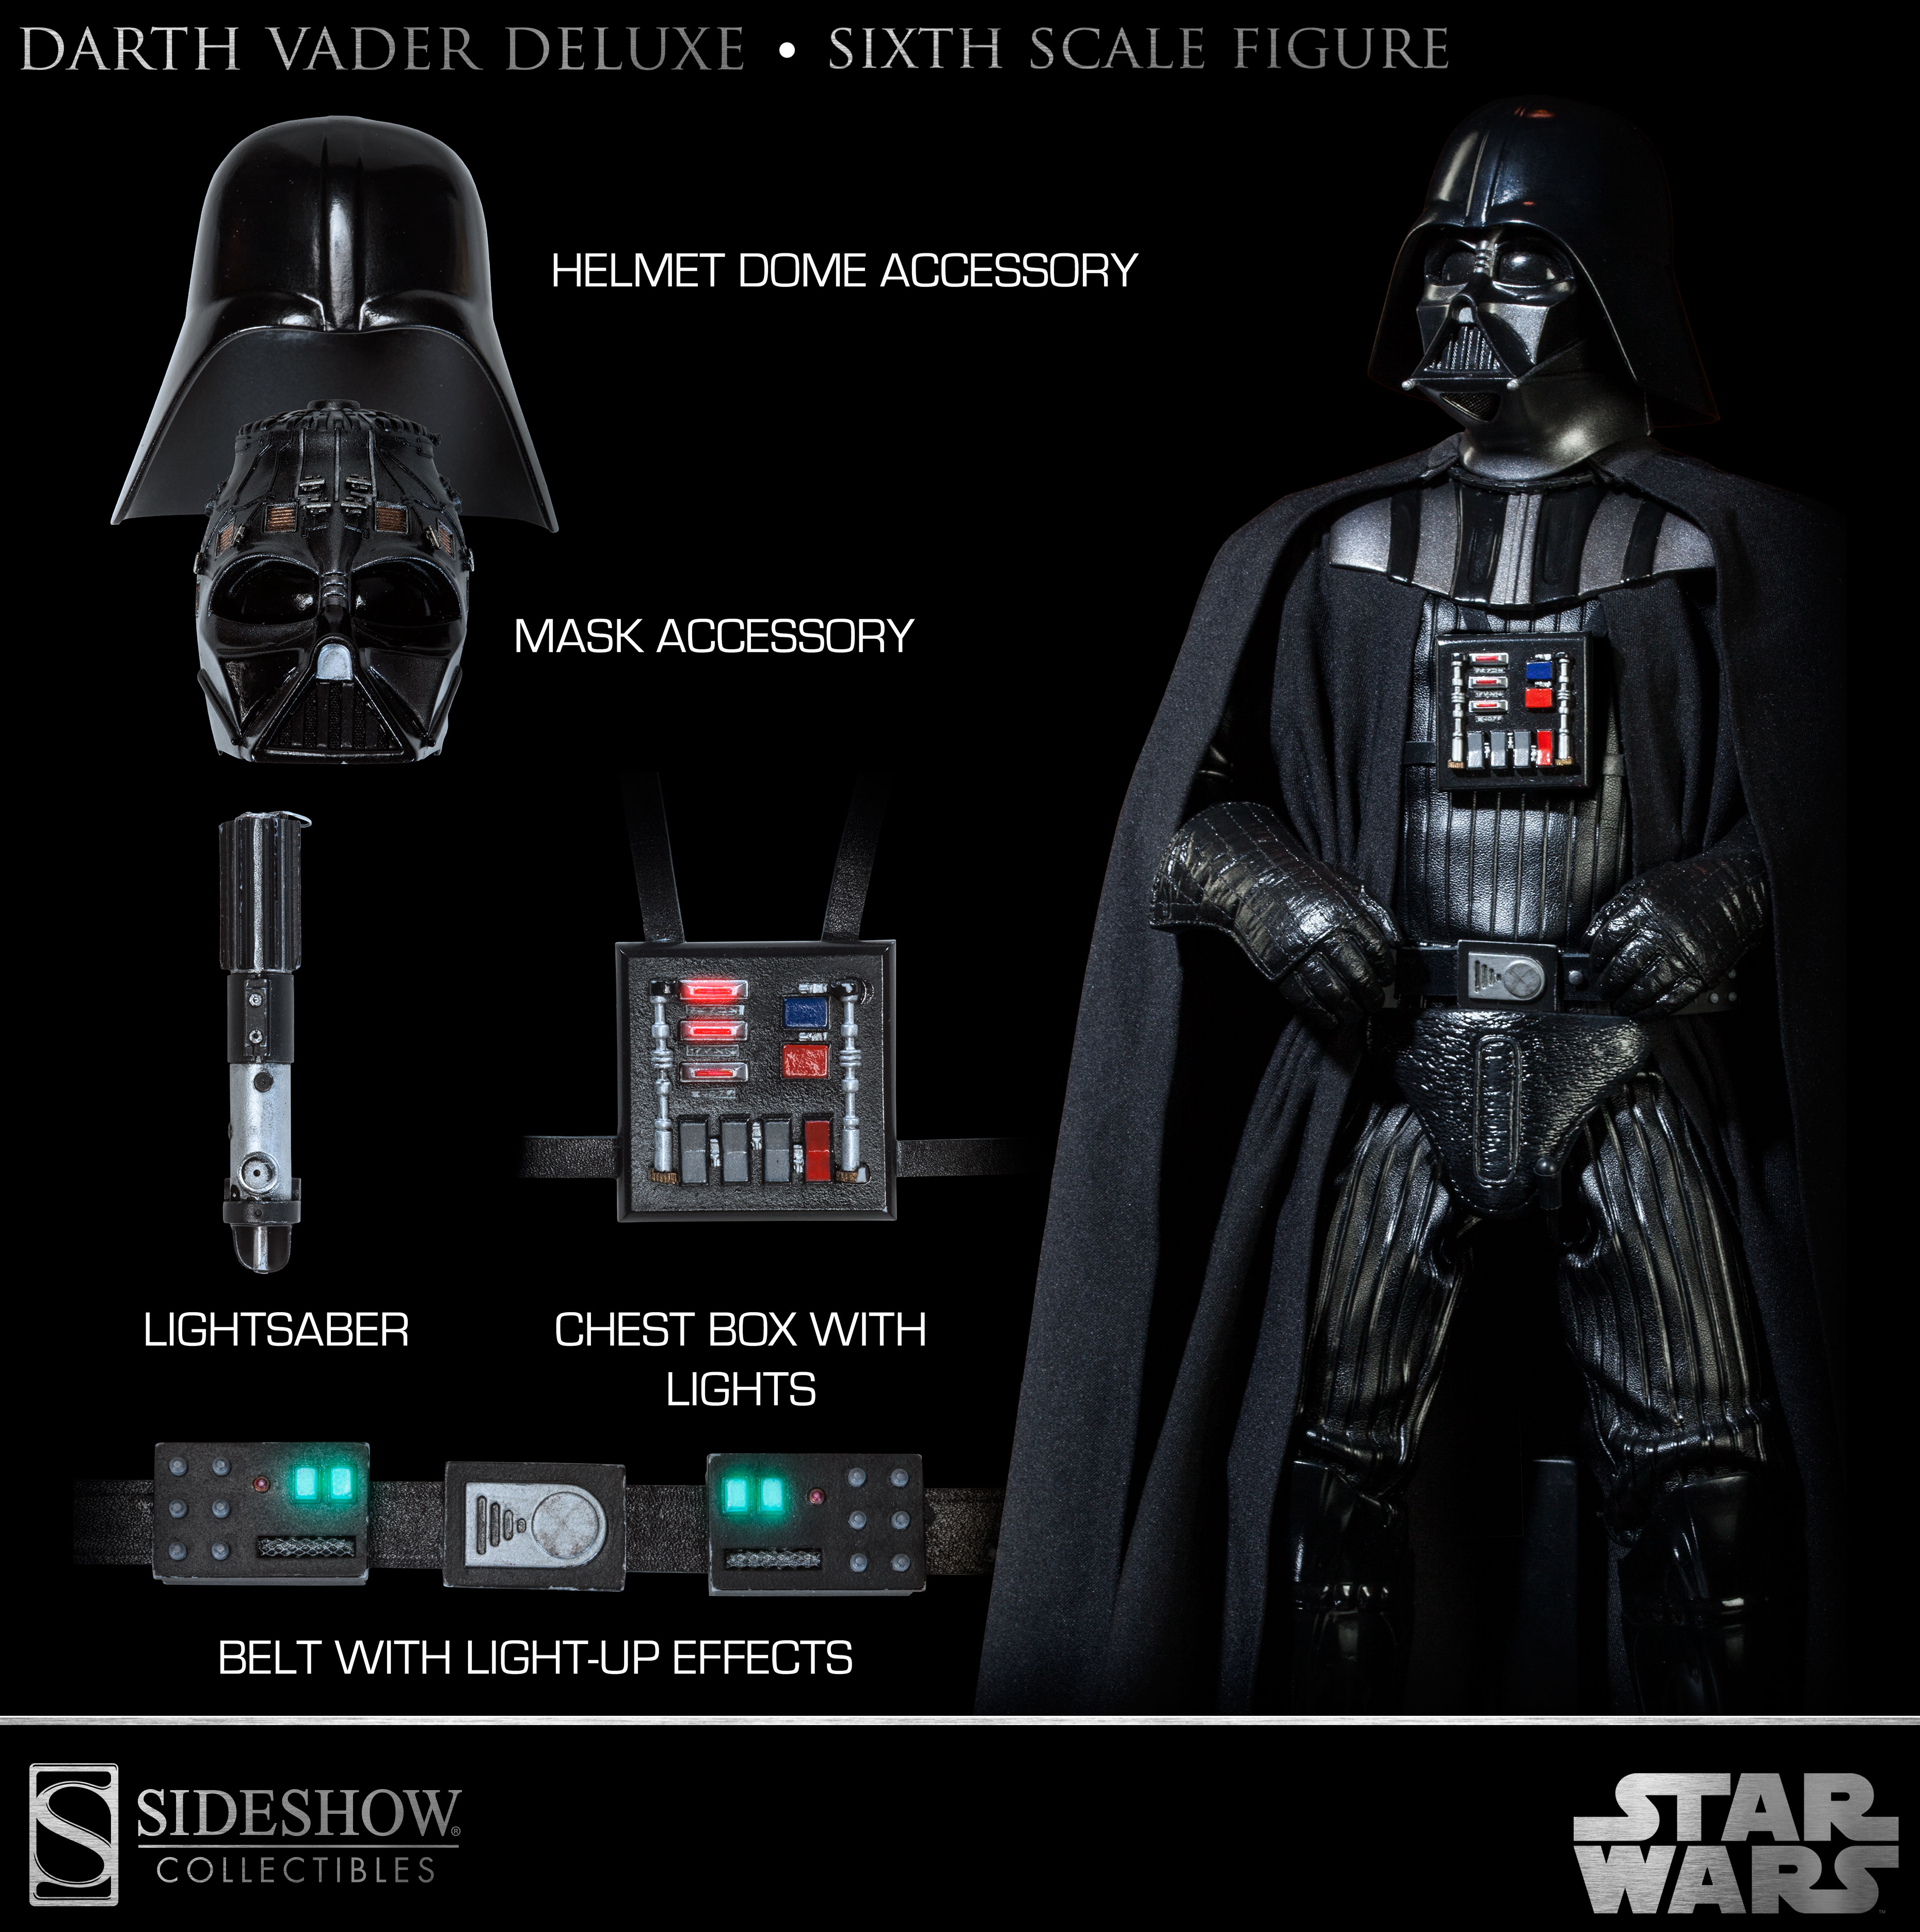 Sideshow Collectibles Announces The Most Detailed Darth